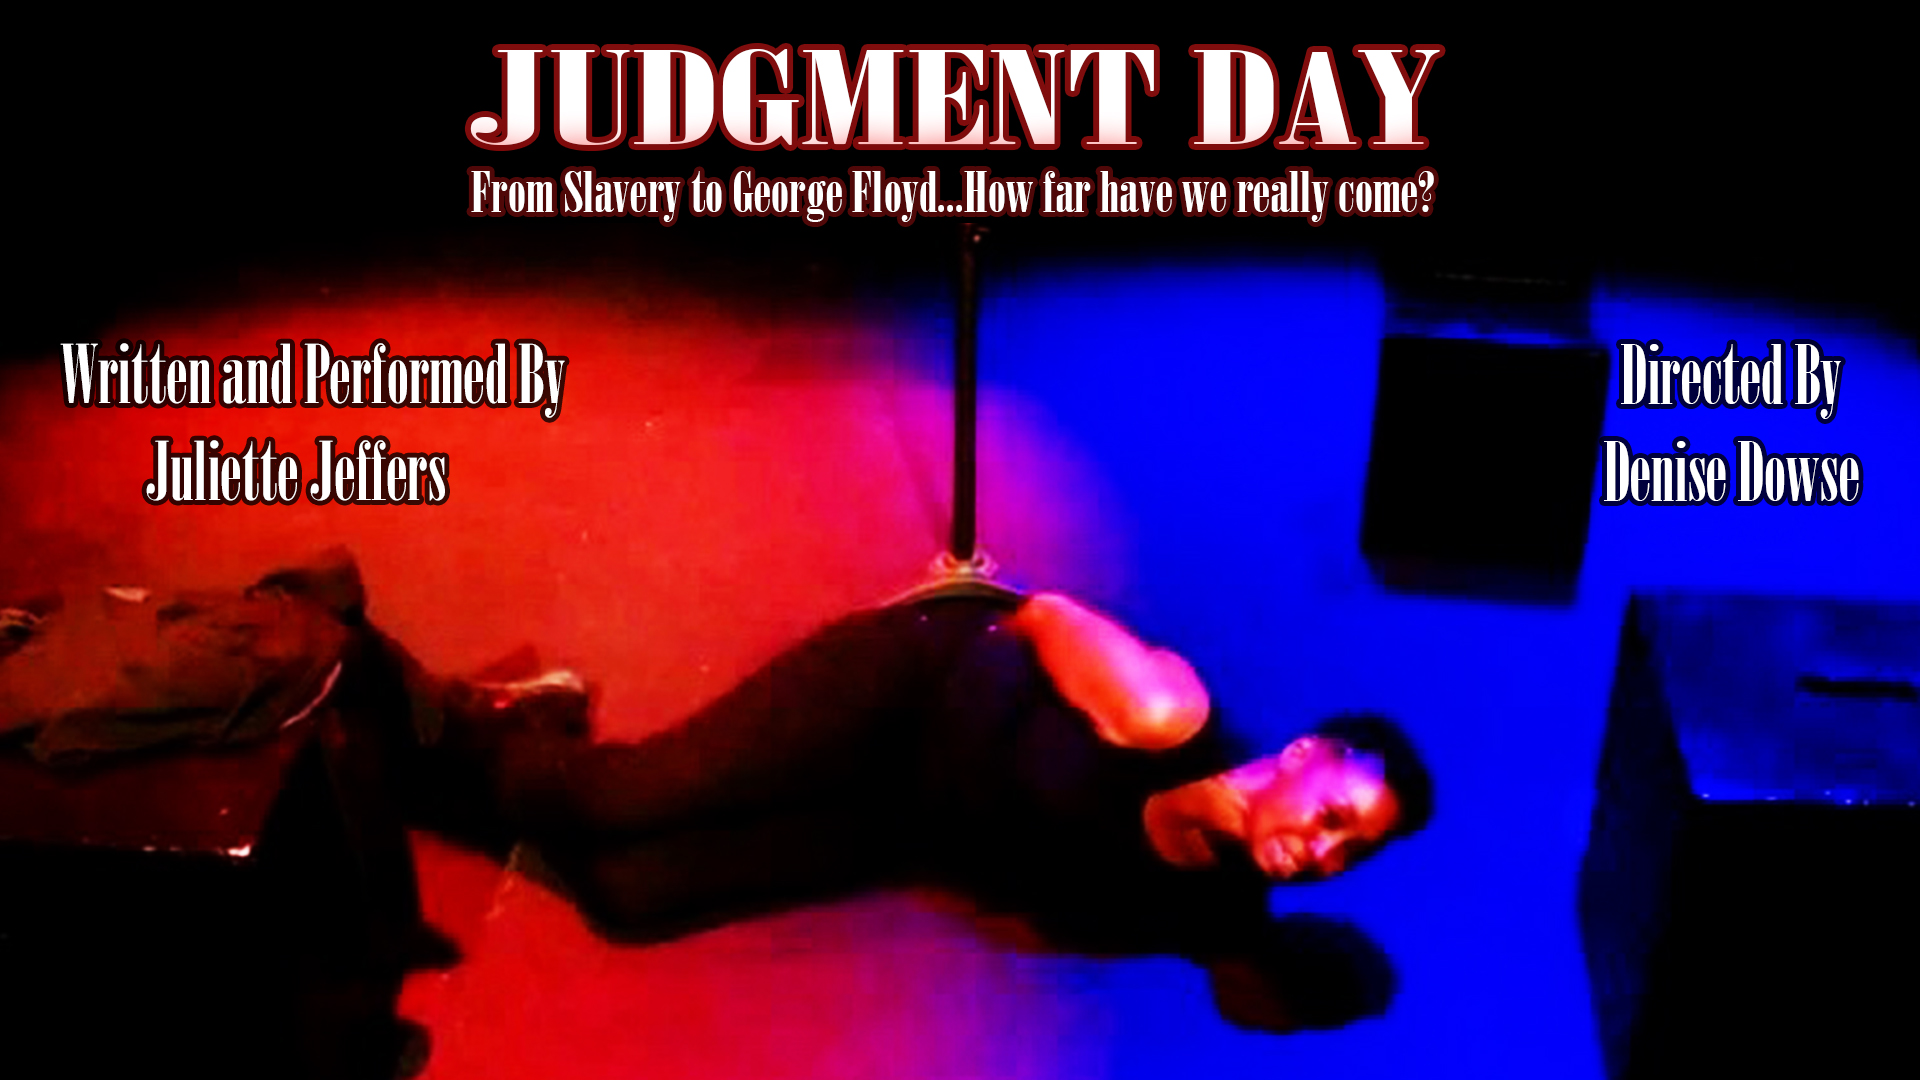 Judgment Day Feb 28 @ 1pm PST